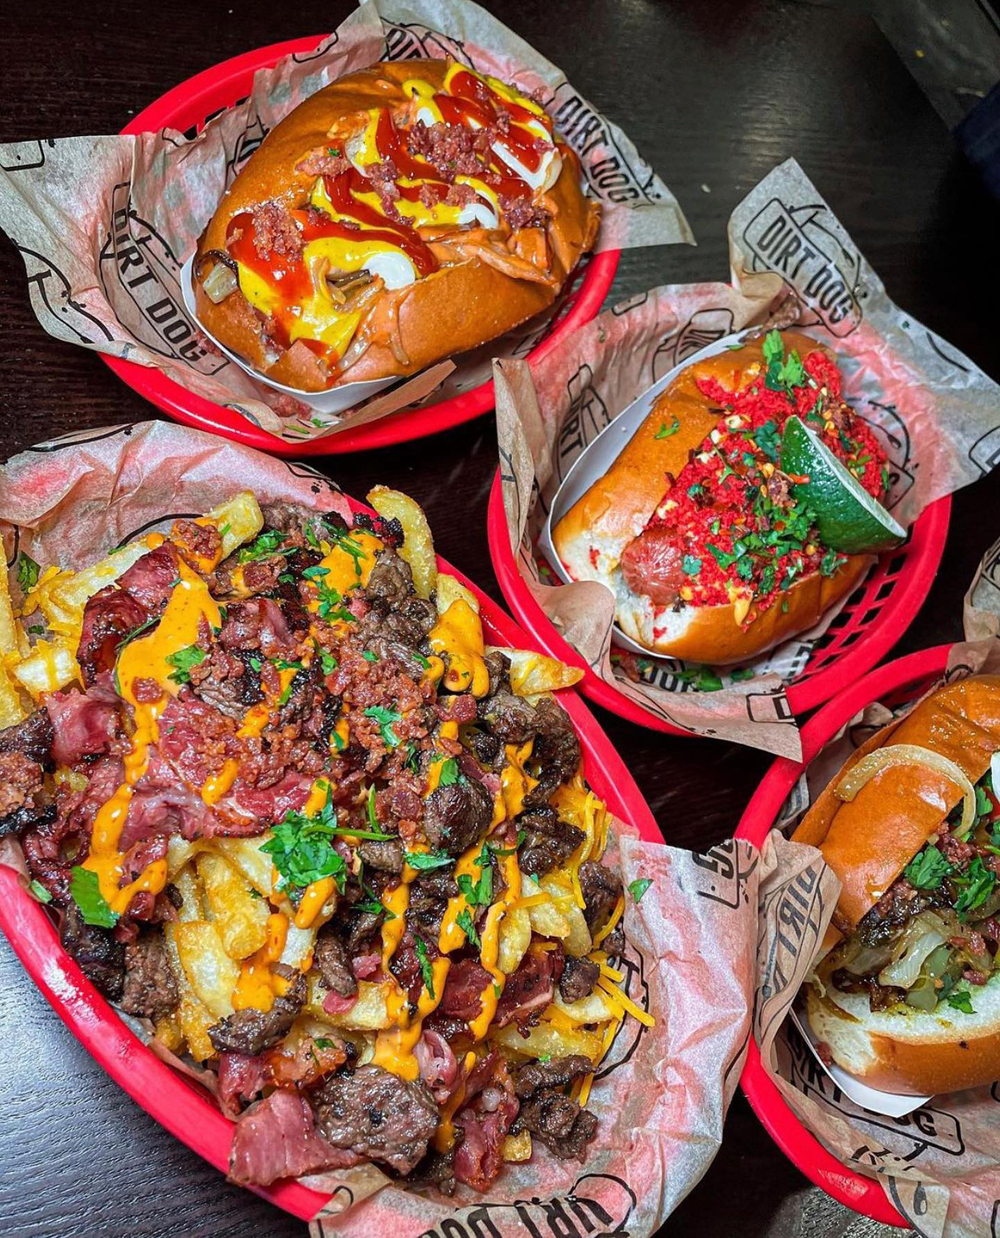 A trio of bacon wrapped hot dogs, plus pastrami, carne asada and bacon bits topped fries, on the popular menu at Dirt Dog.